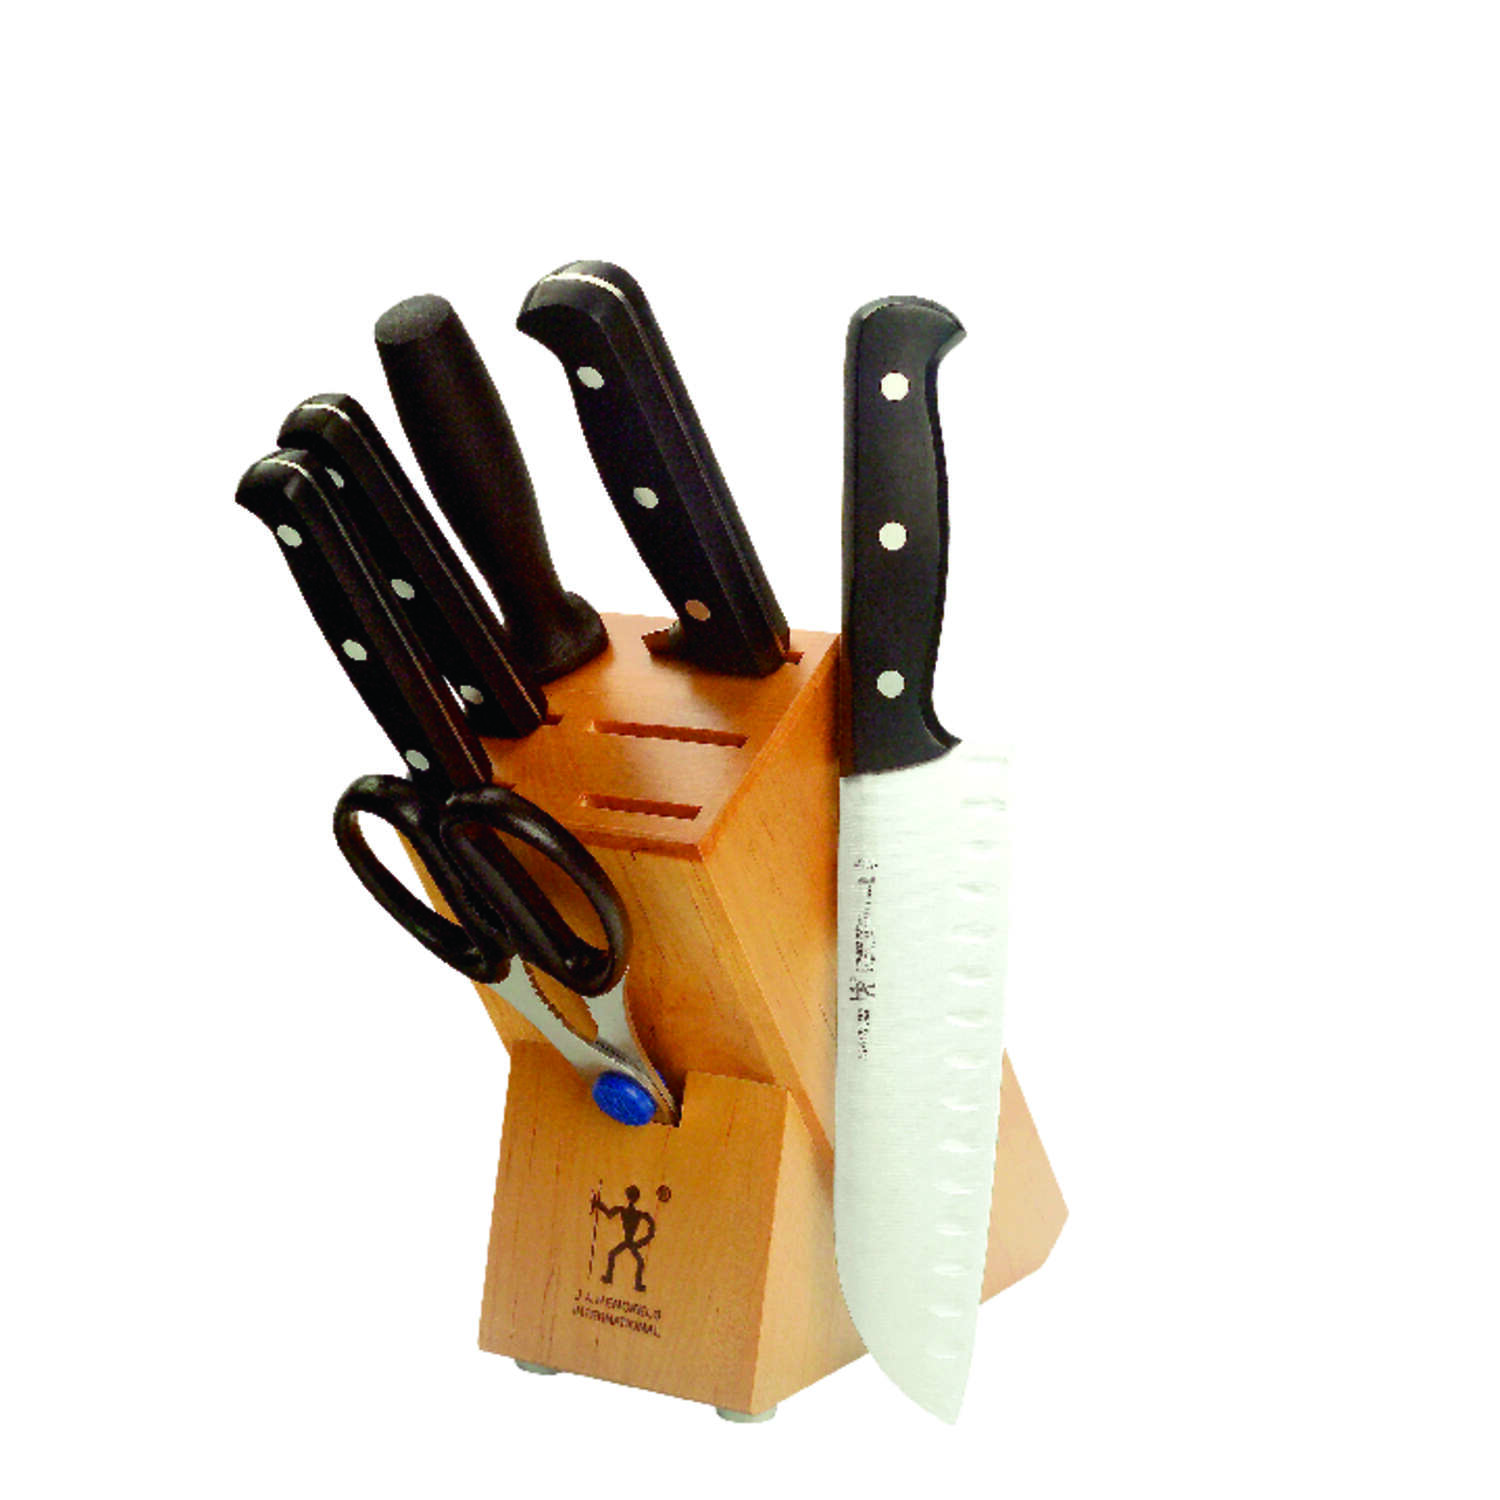 Zwilling Henckels  Stainless Steel  Wood Block Knife Set  7 pc.